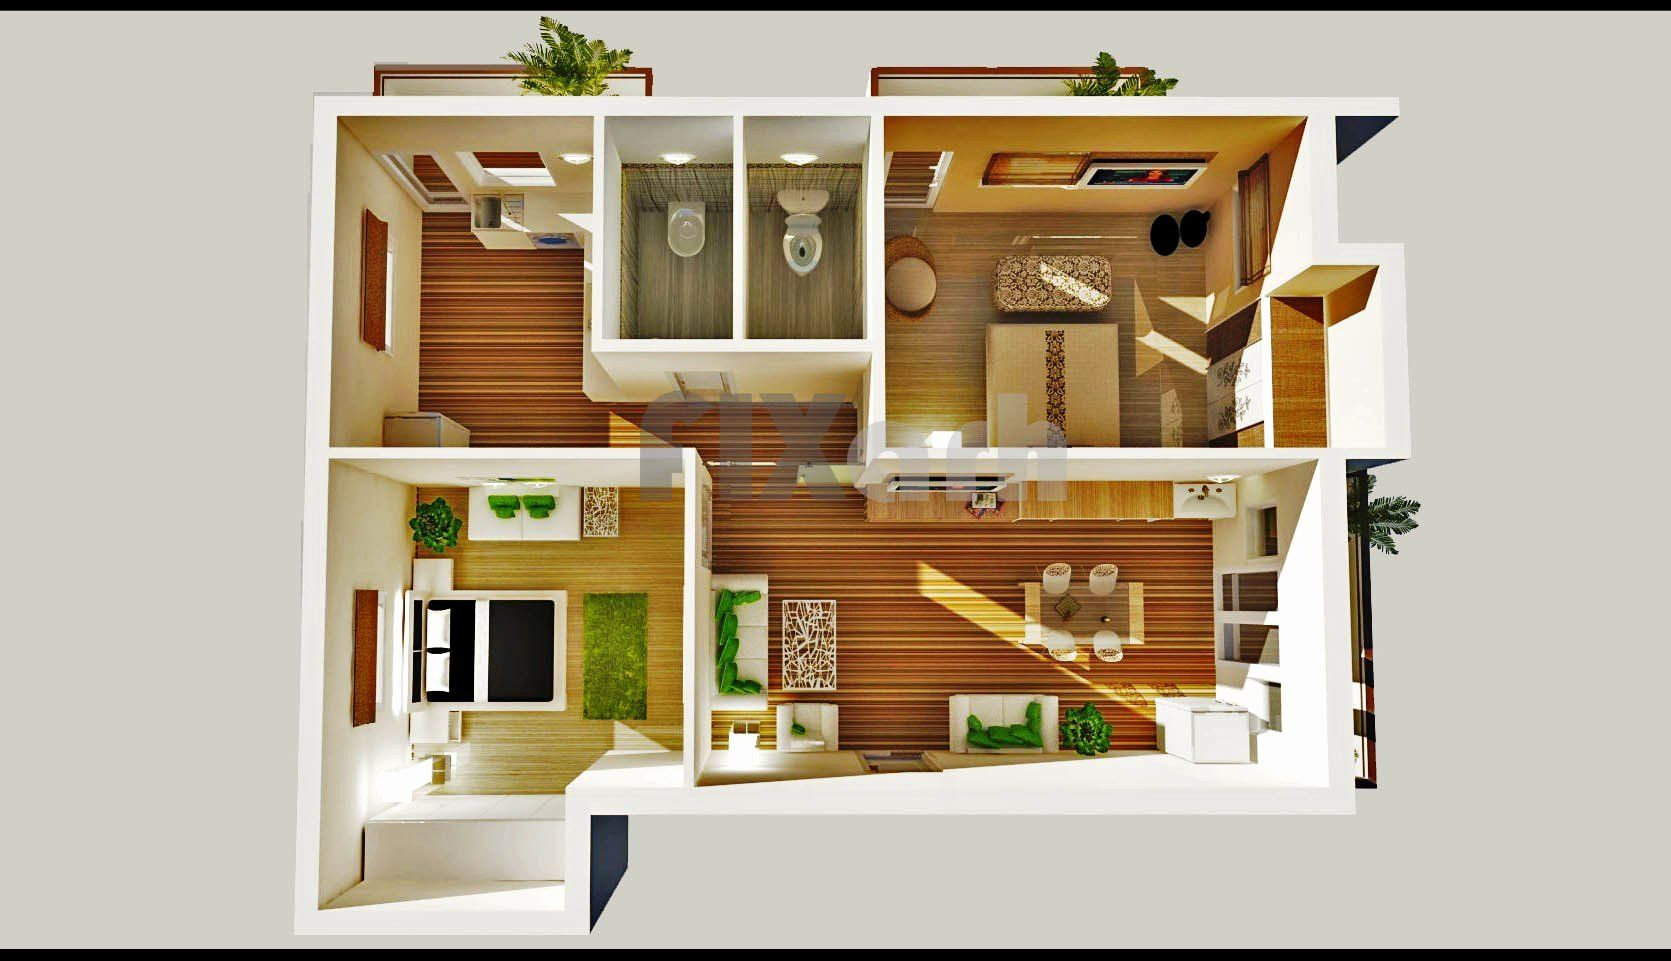 Small 2 Bedroom House Plans New Things You Need To Know To Make Small House Plans Home Design Floor Plans Apartment Design Small House Plans